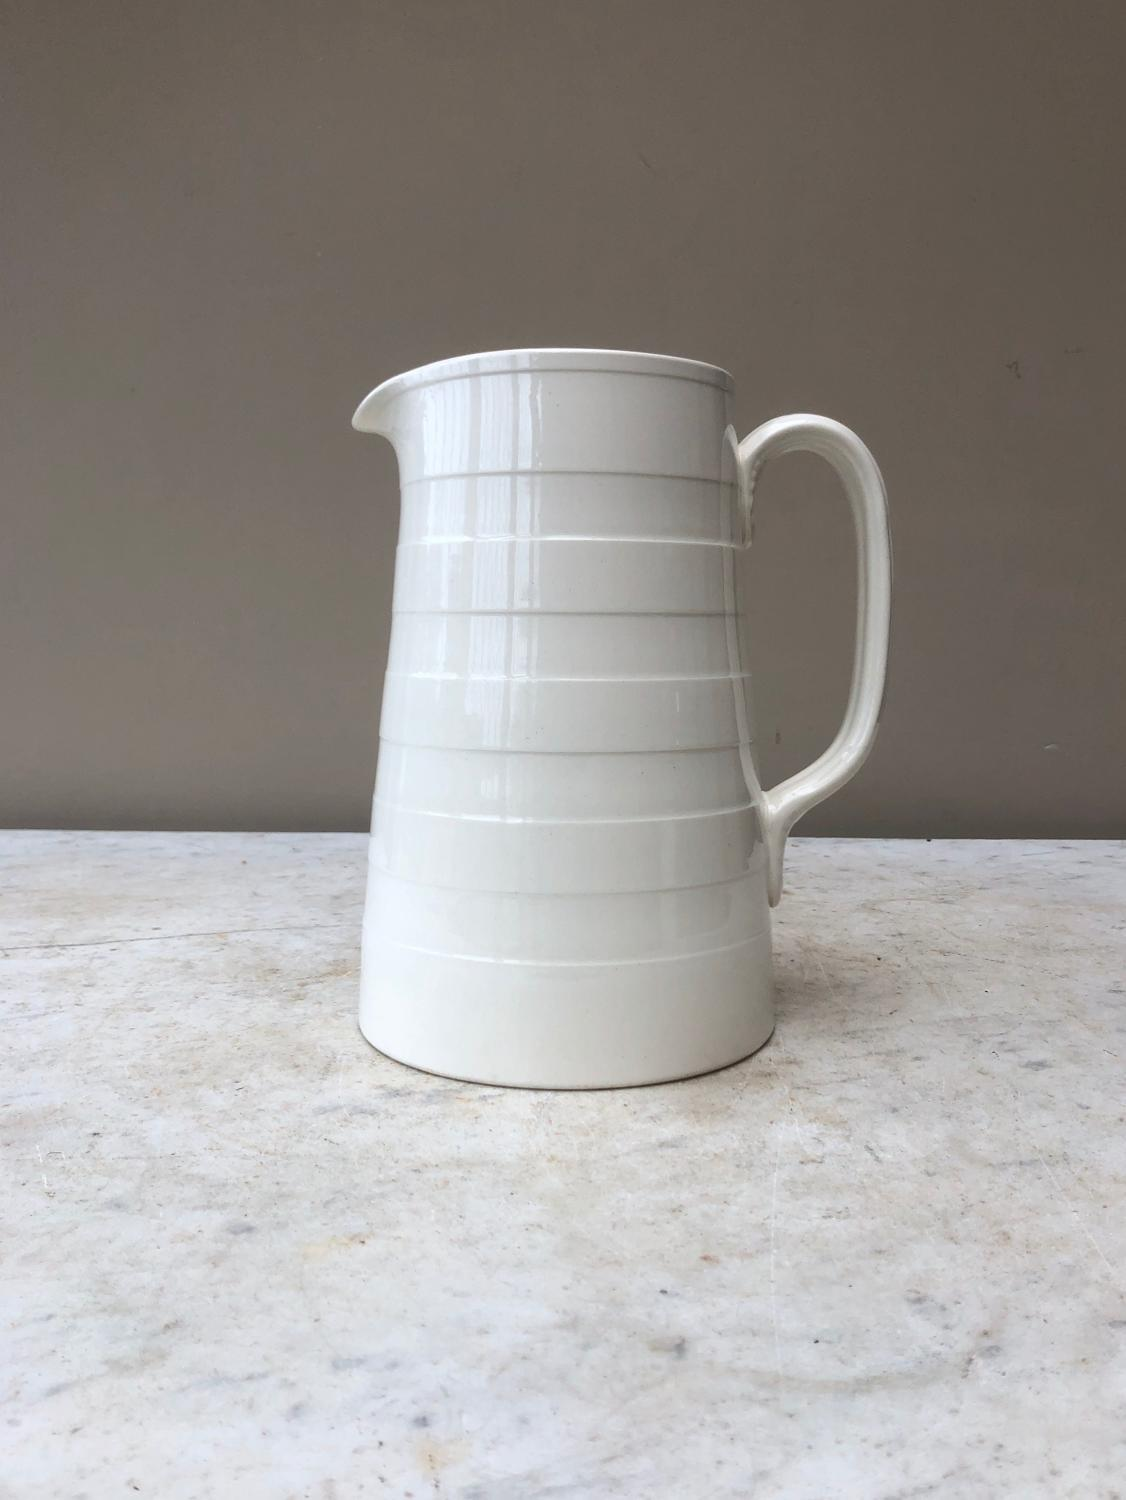 Excellent Condition Edwardian White Banded Large Dairy Cream Jug